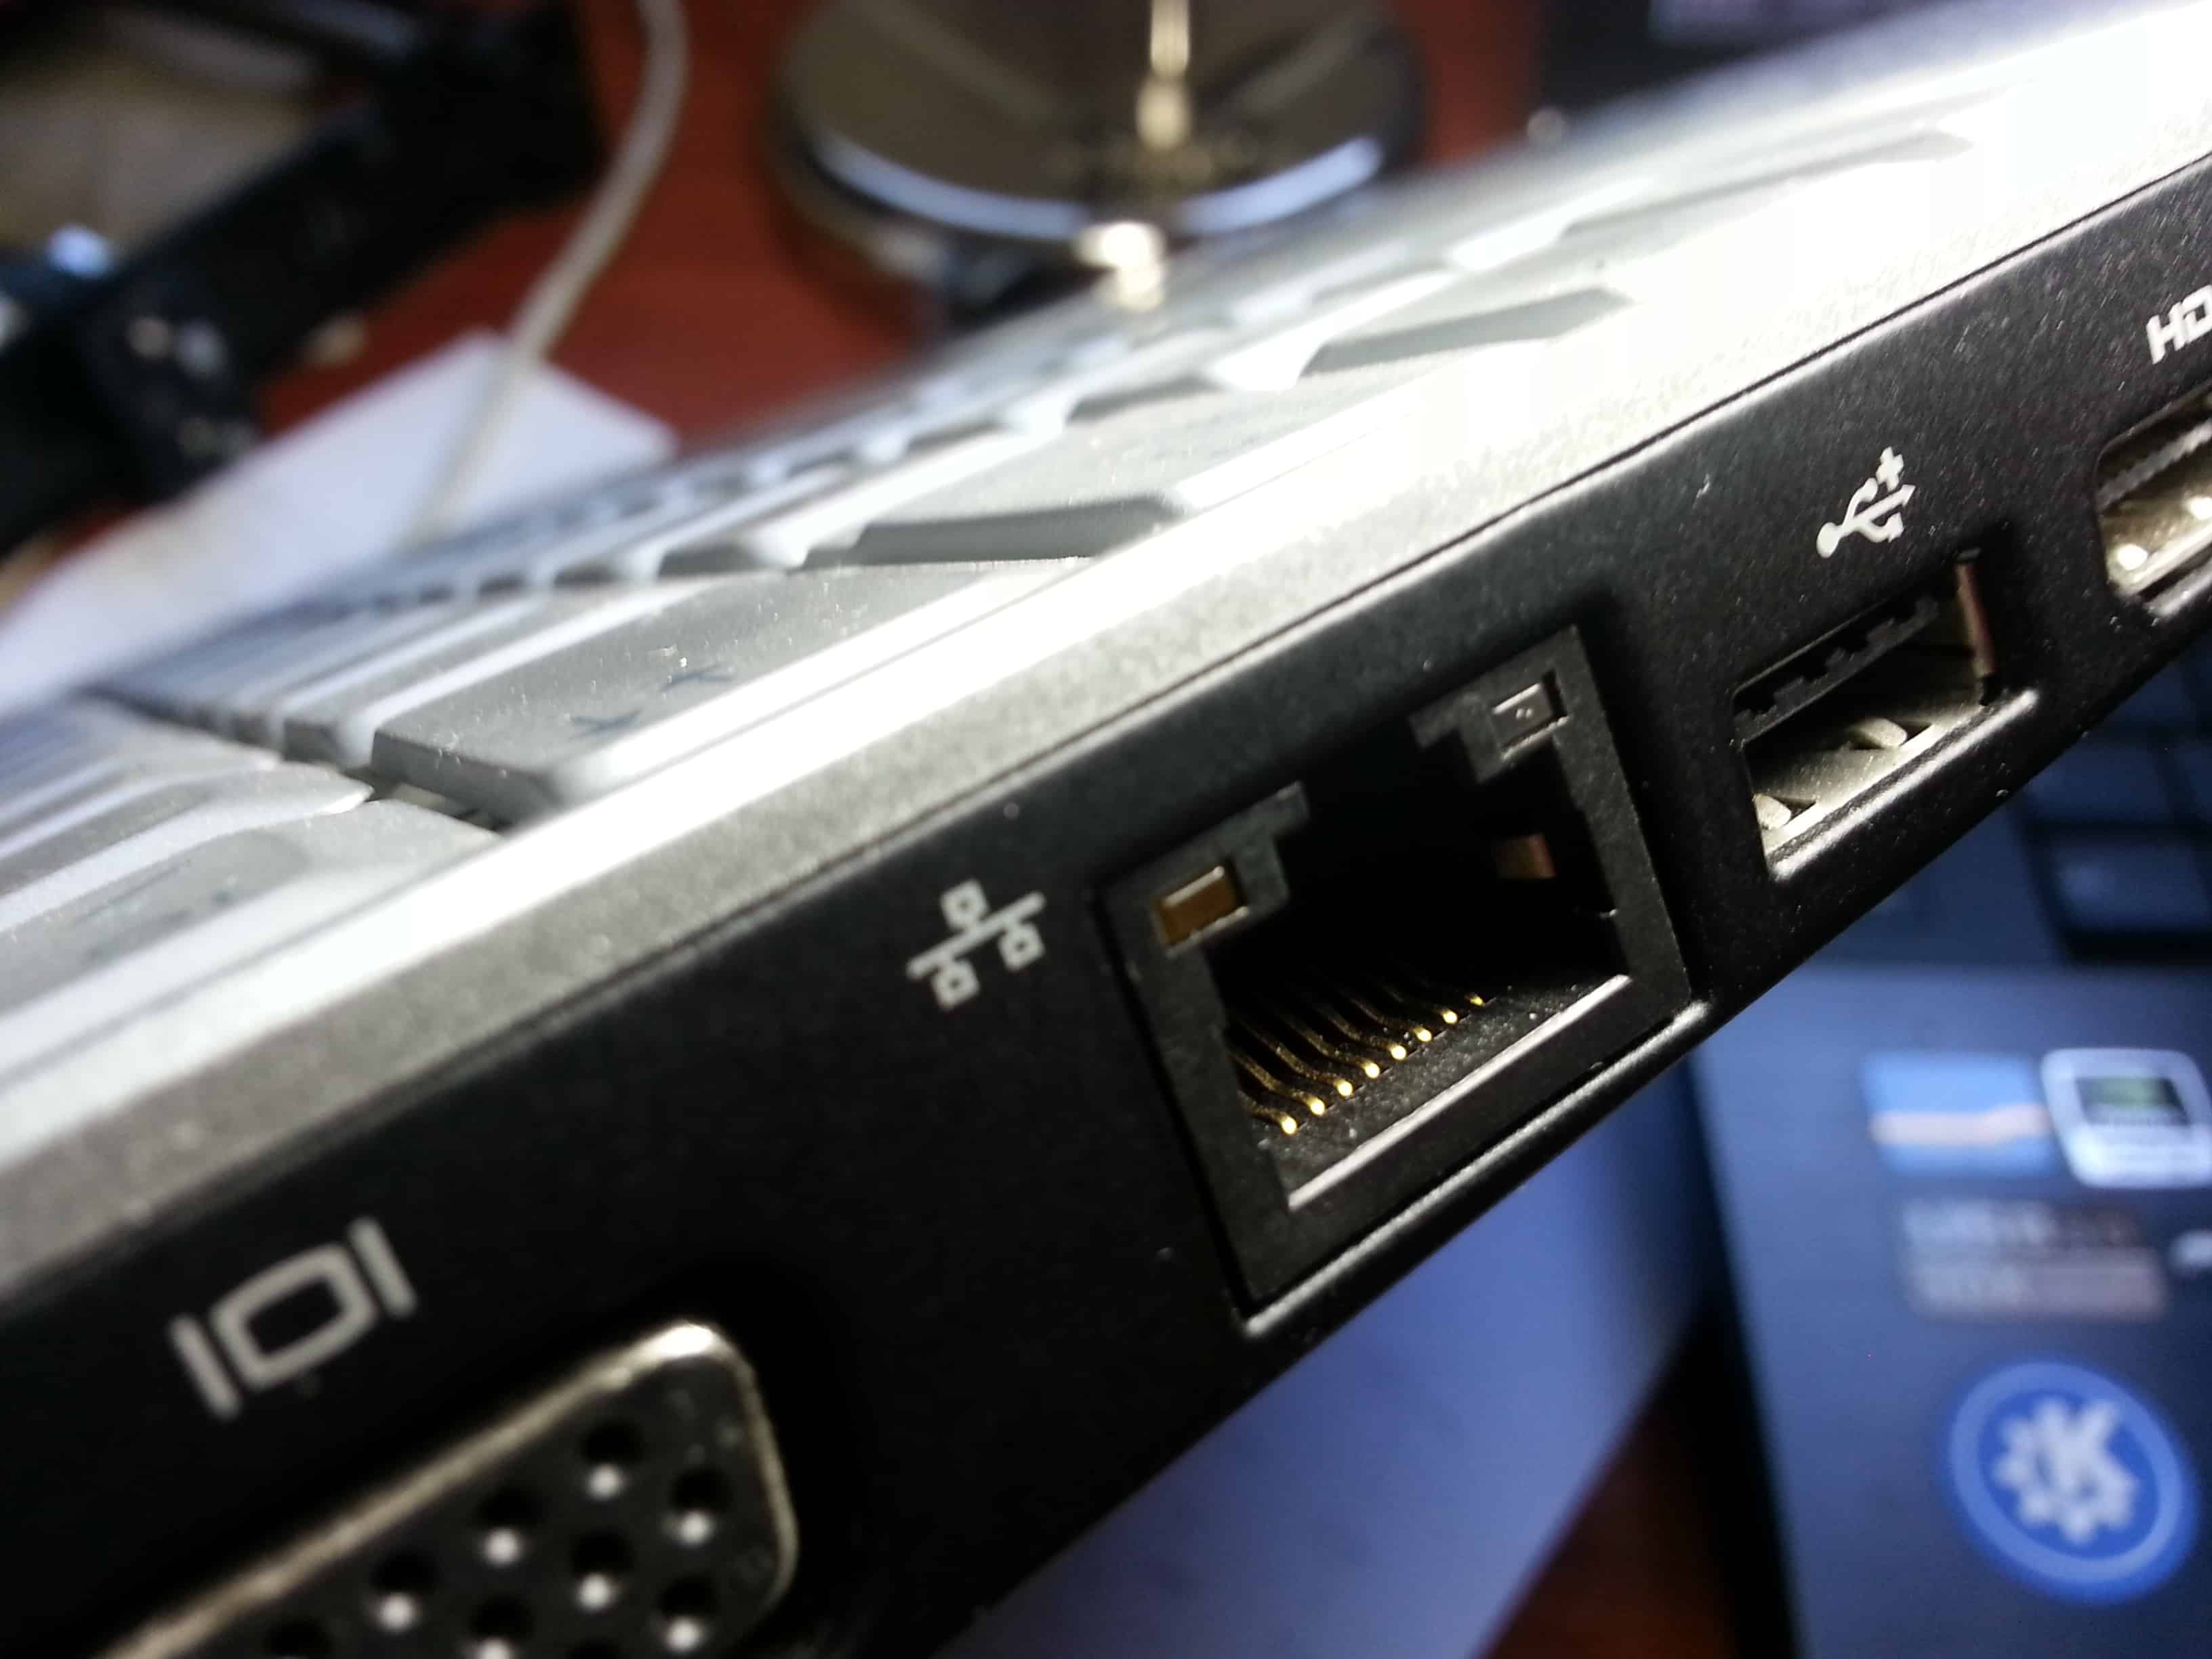 RJ45 port on a laptop computer.